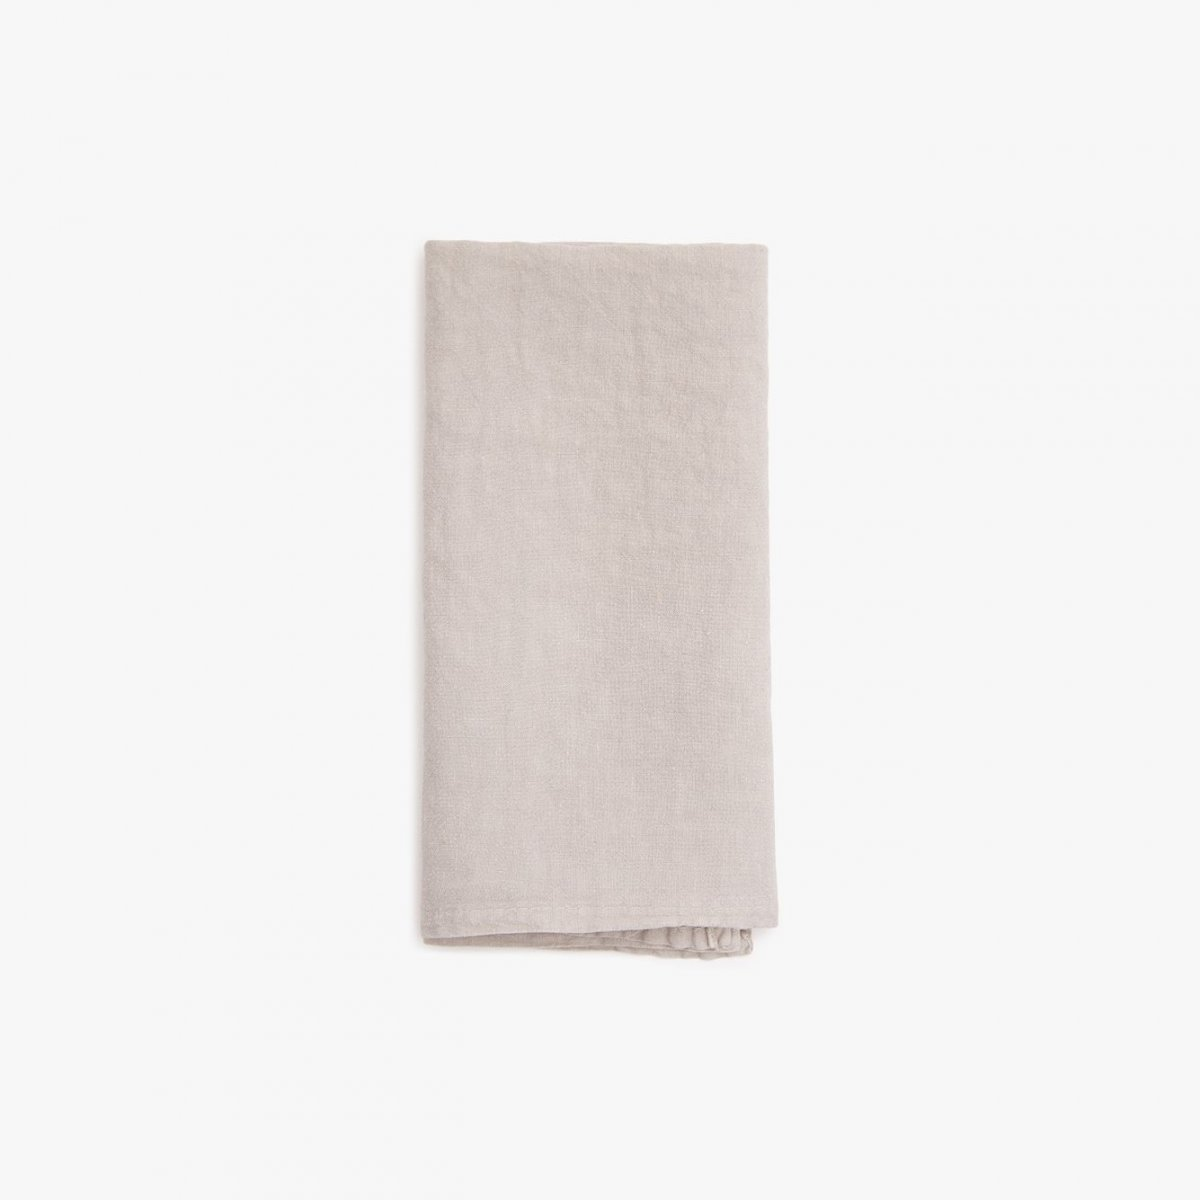 Simple Linen Napkin, light gray.